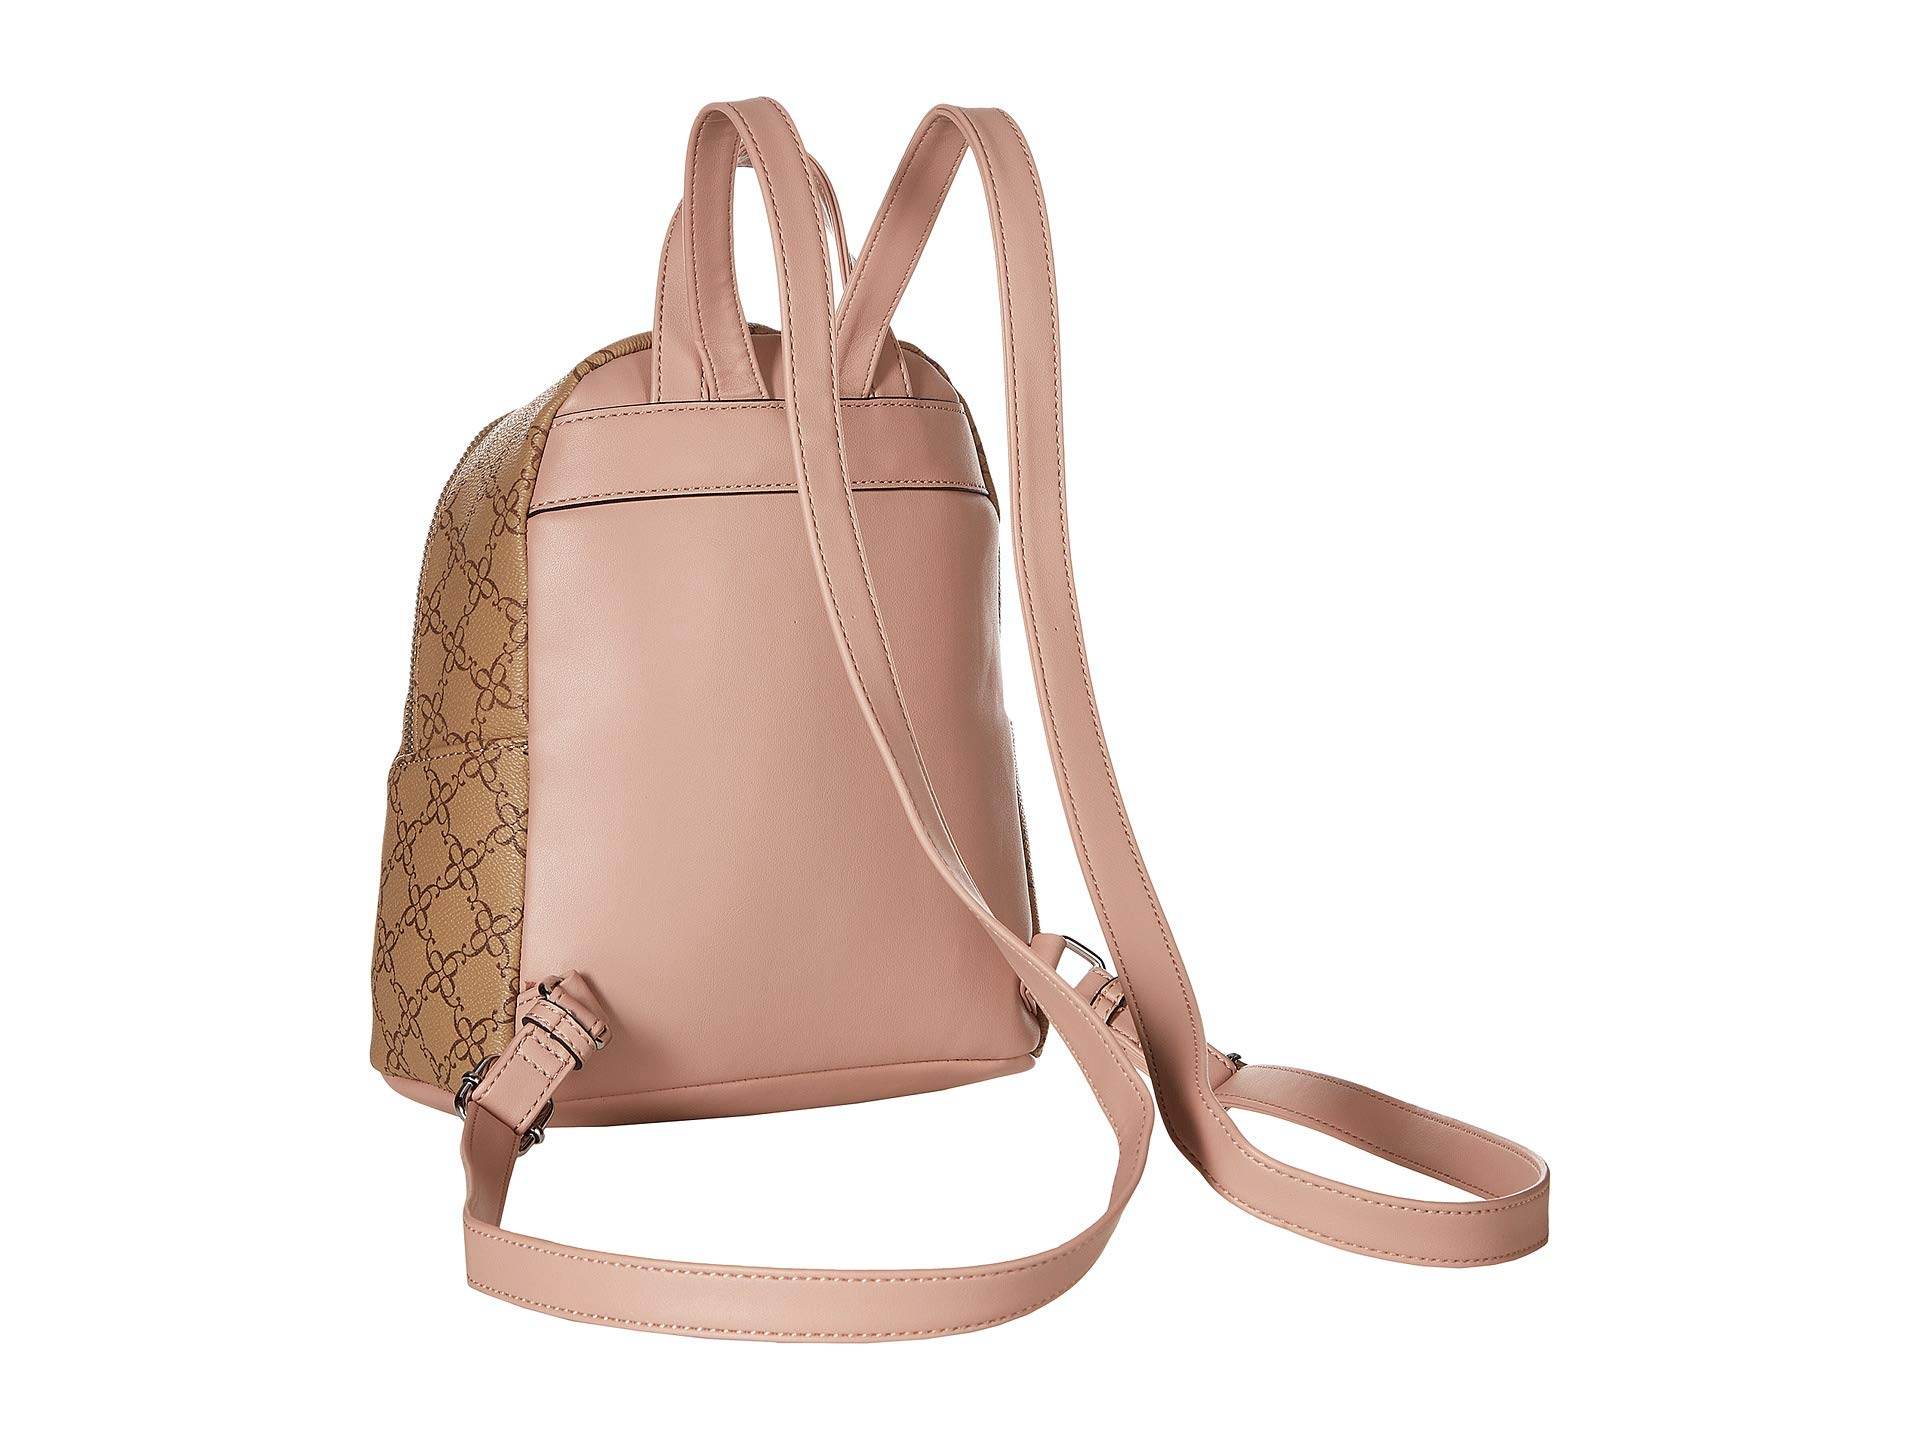 Mocha Backpack West Nine Nine Floret West Floret Backpack Mocha ZxRwR6